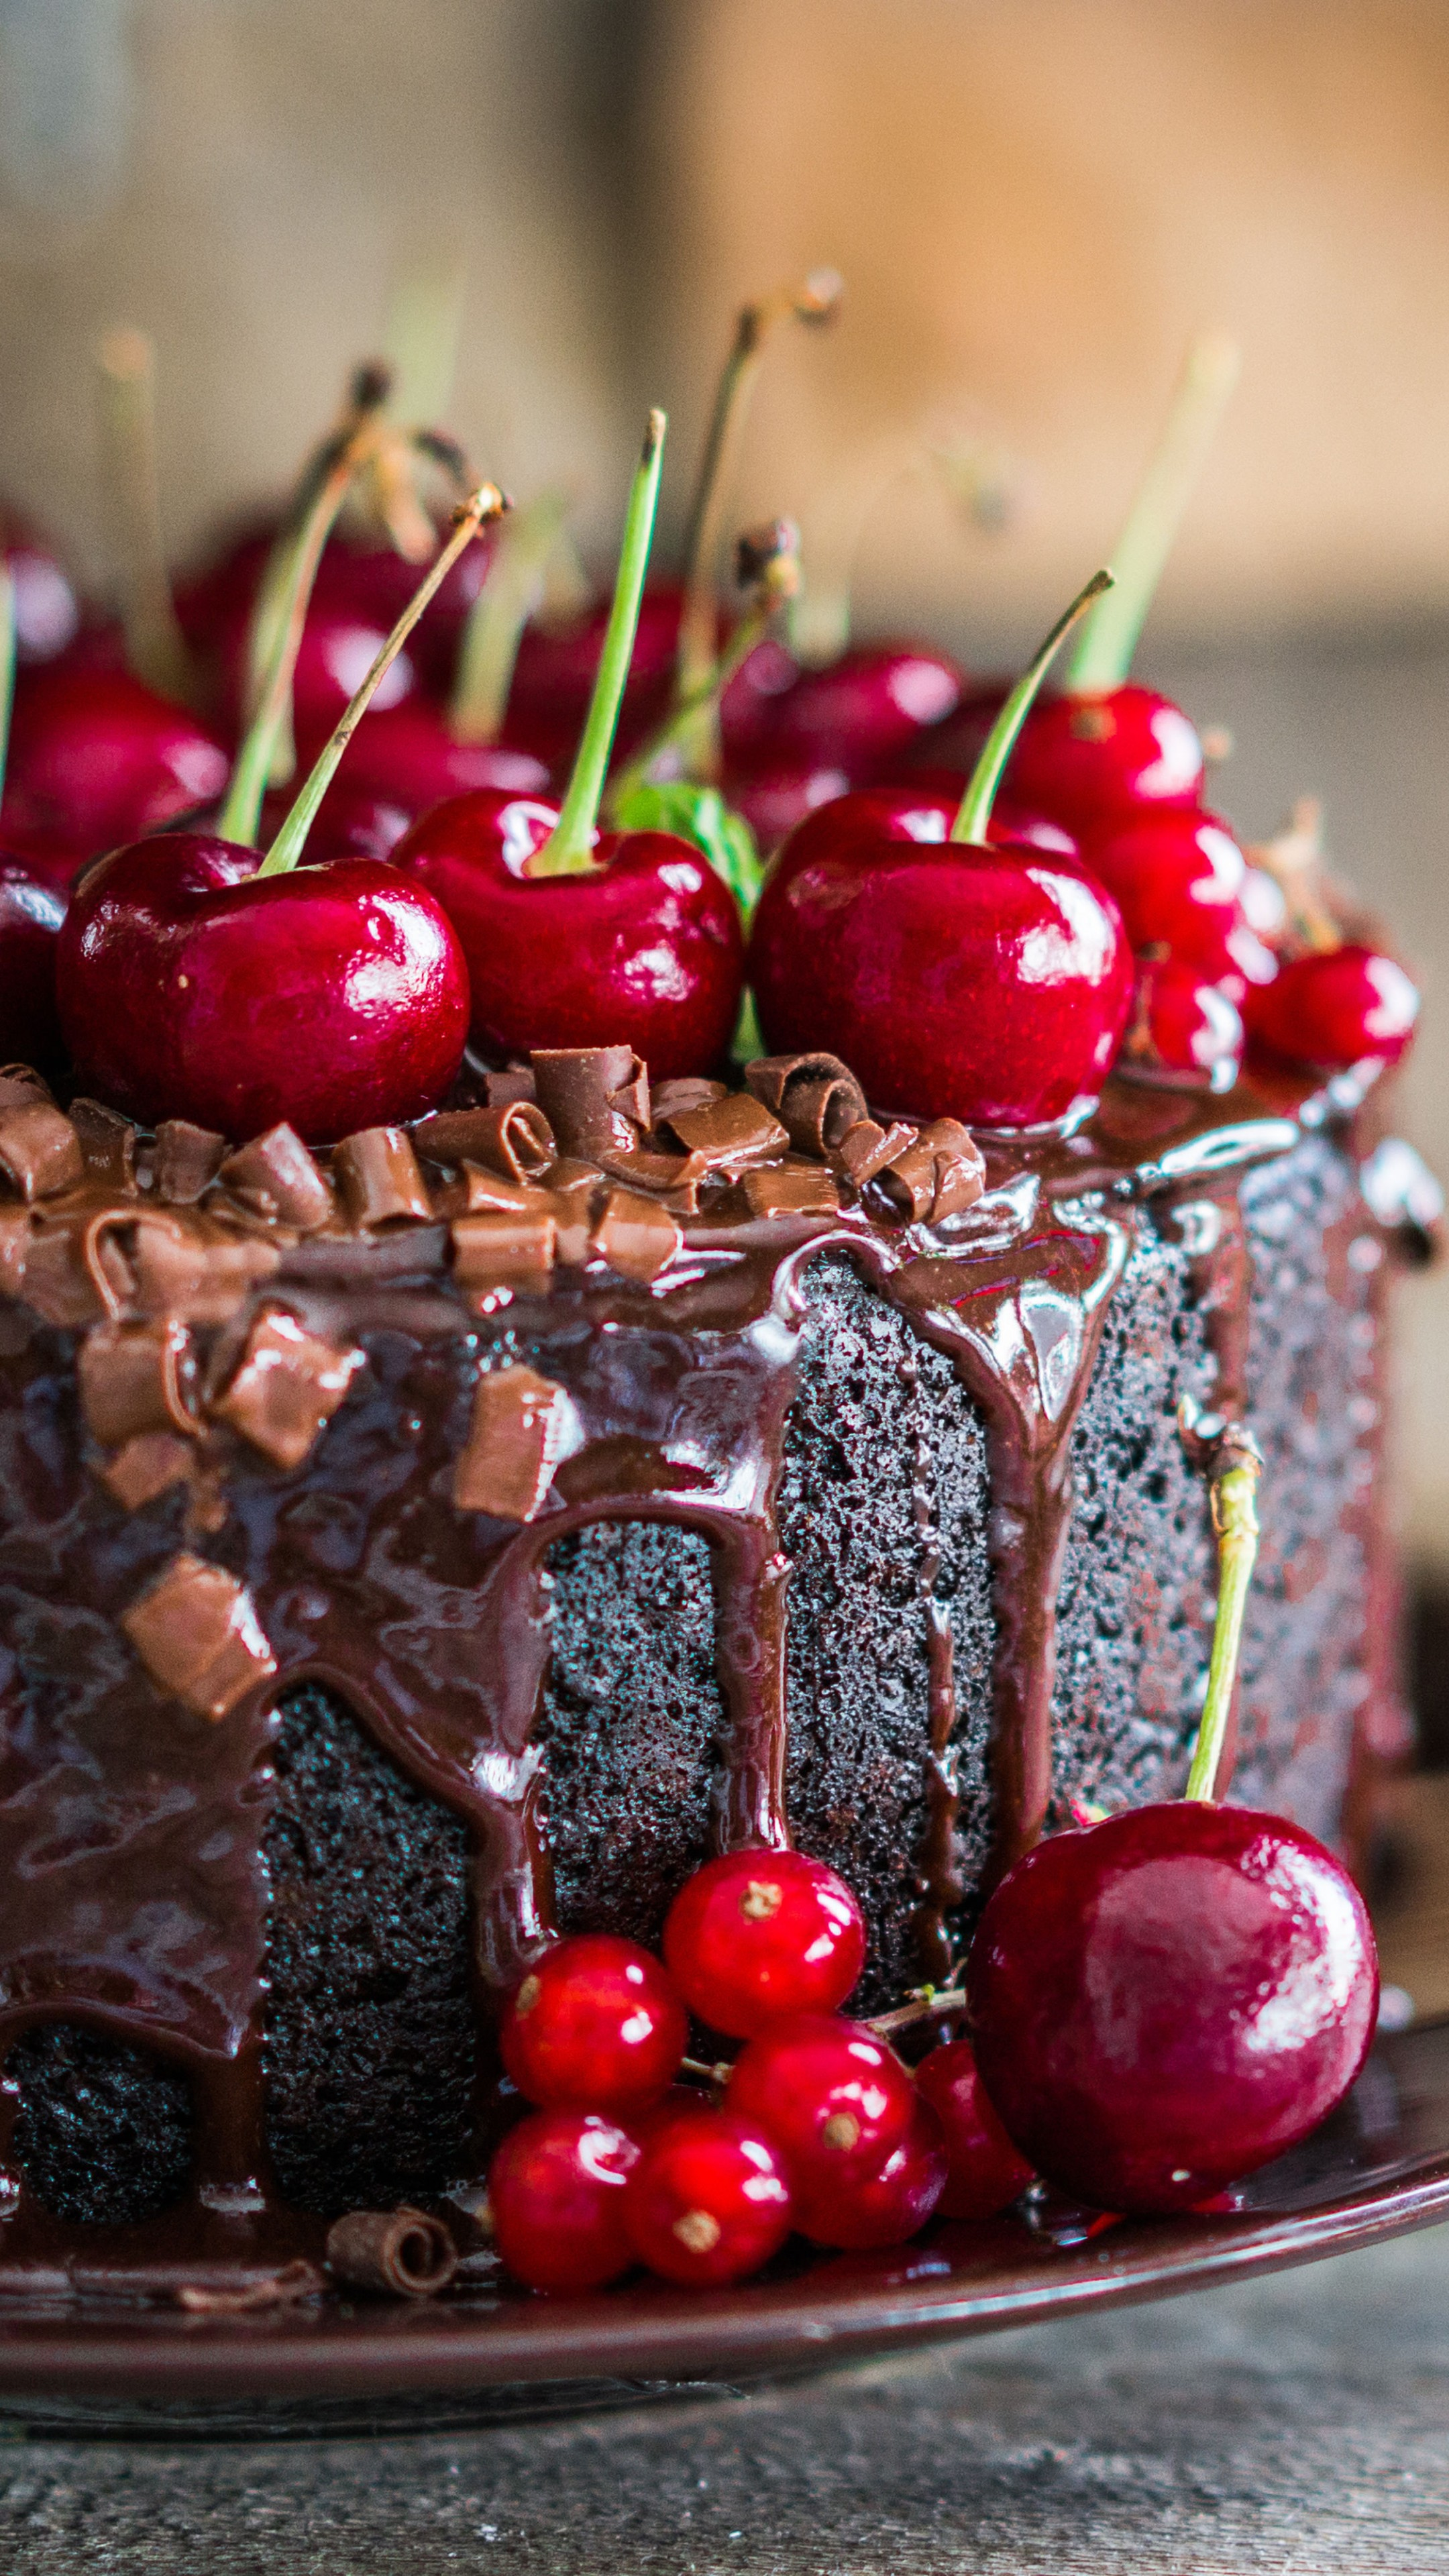 Wallpaper Cake Receipt Chocolate Cherry 5k Food 17068